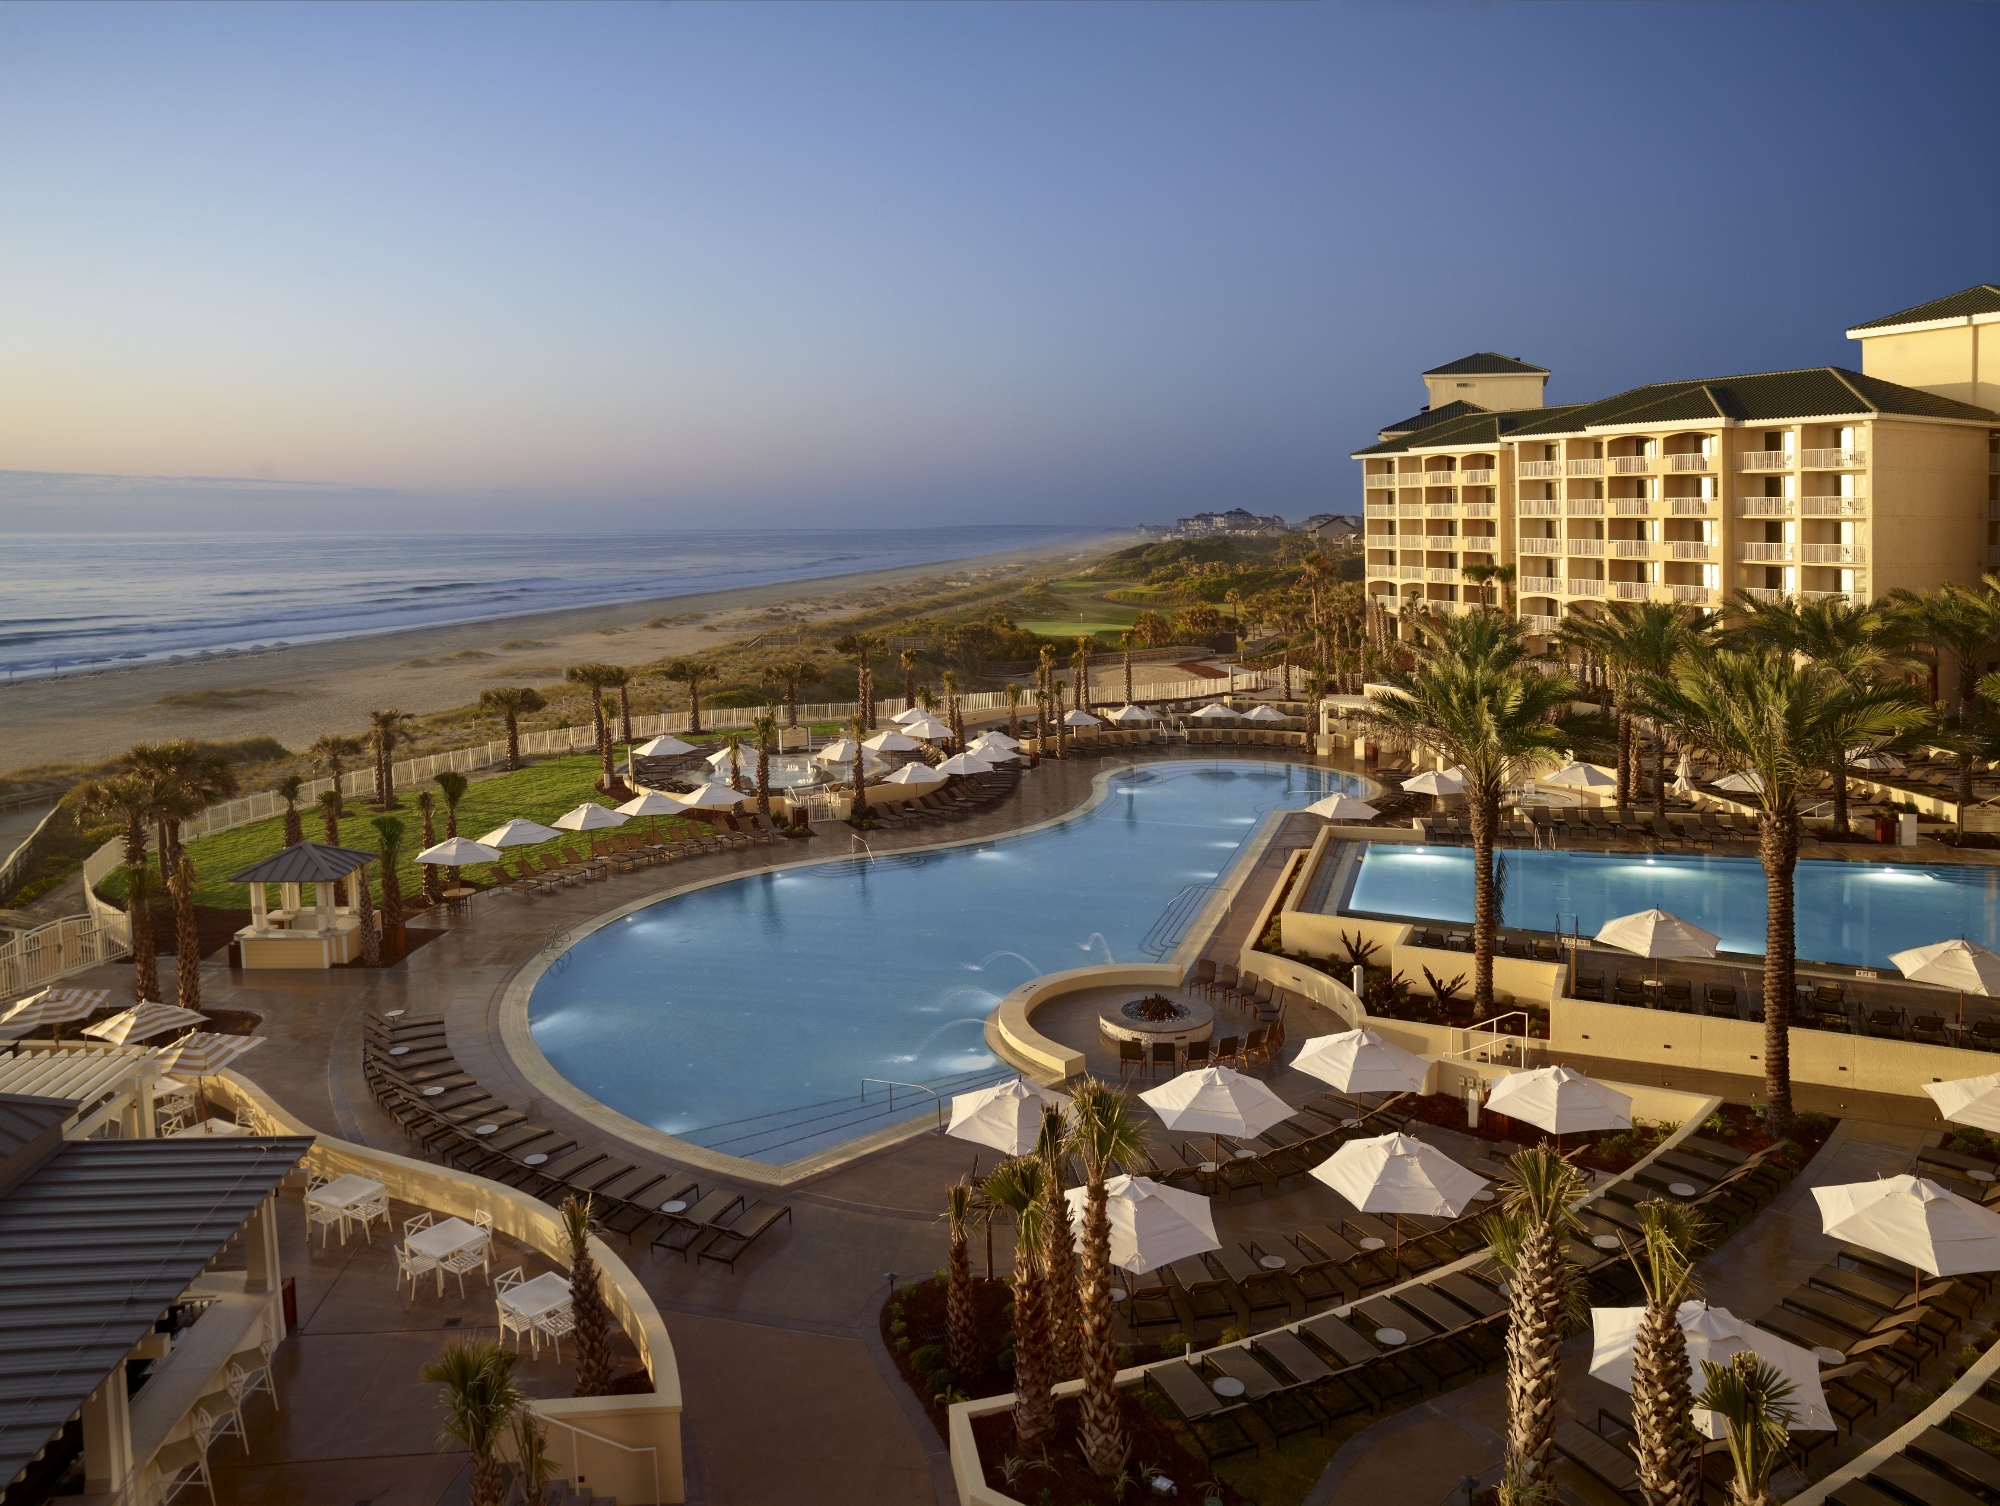 Ociated Luxury Hotels International Alhi Adds Three New Member To Its Southeast U S Collection